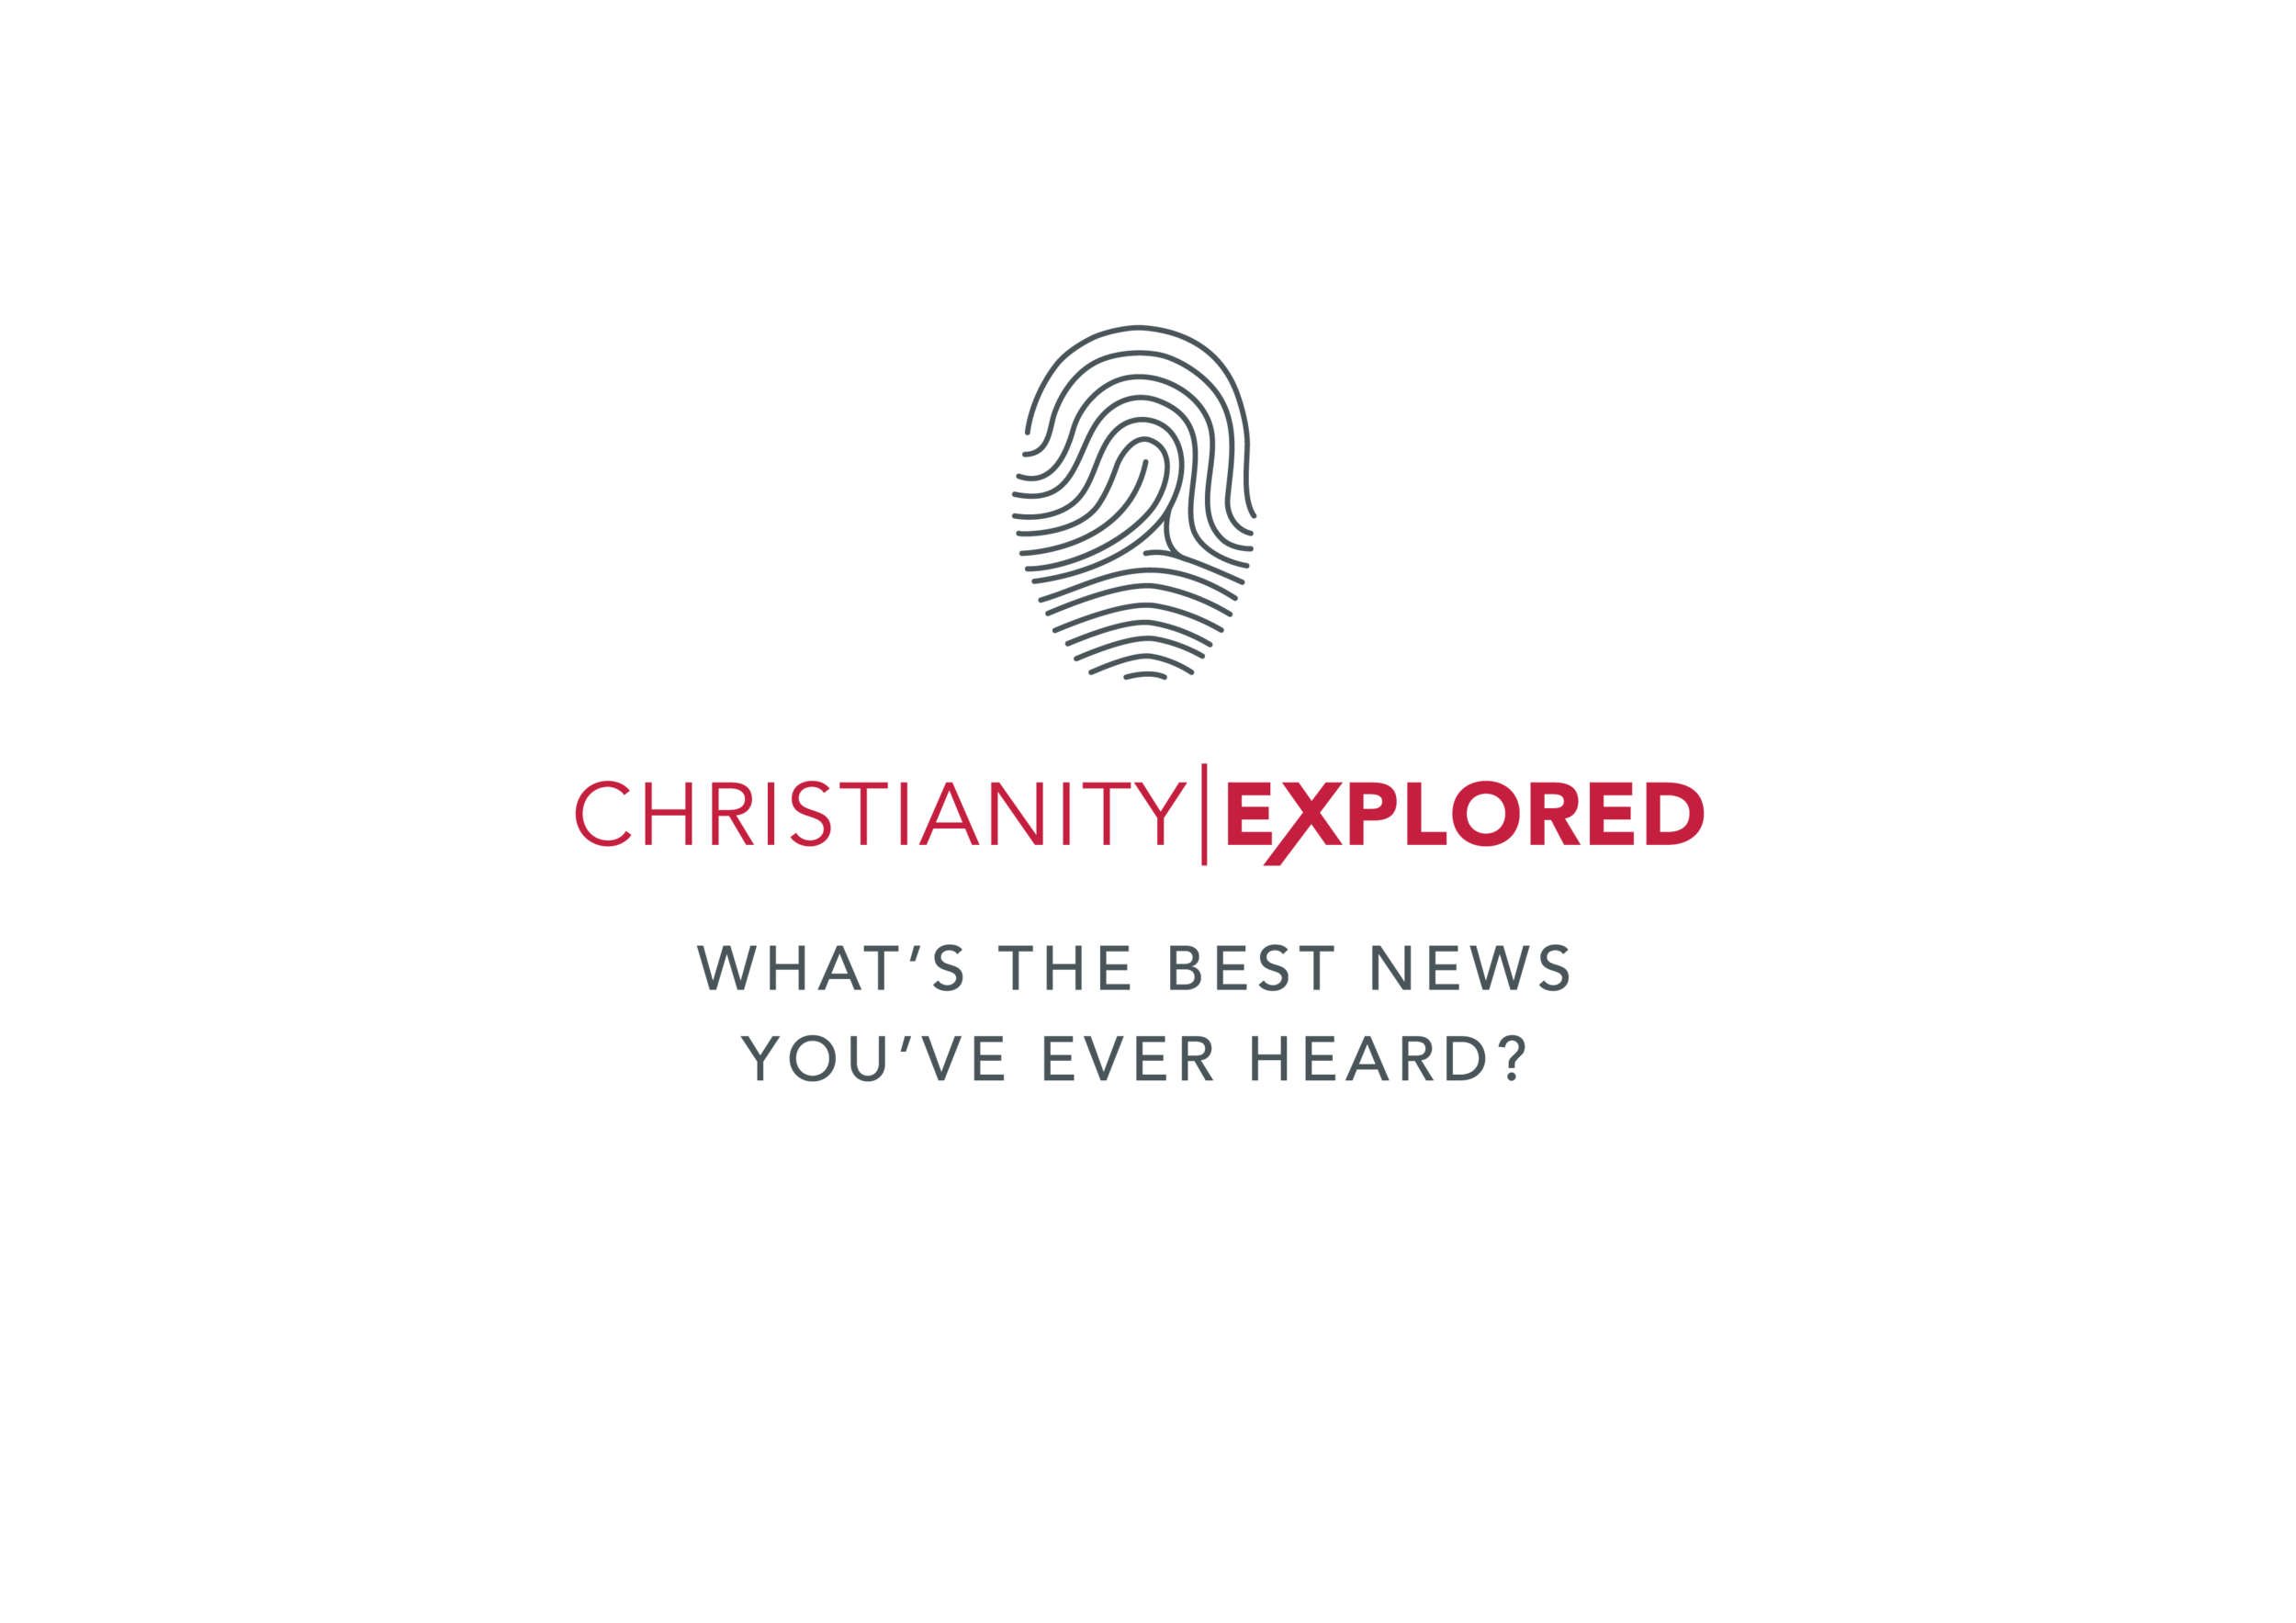 ce-christianity.png